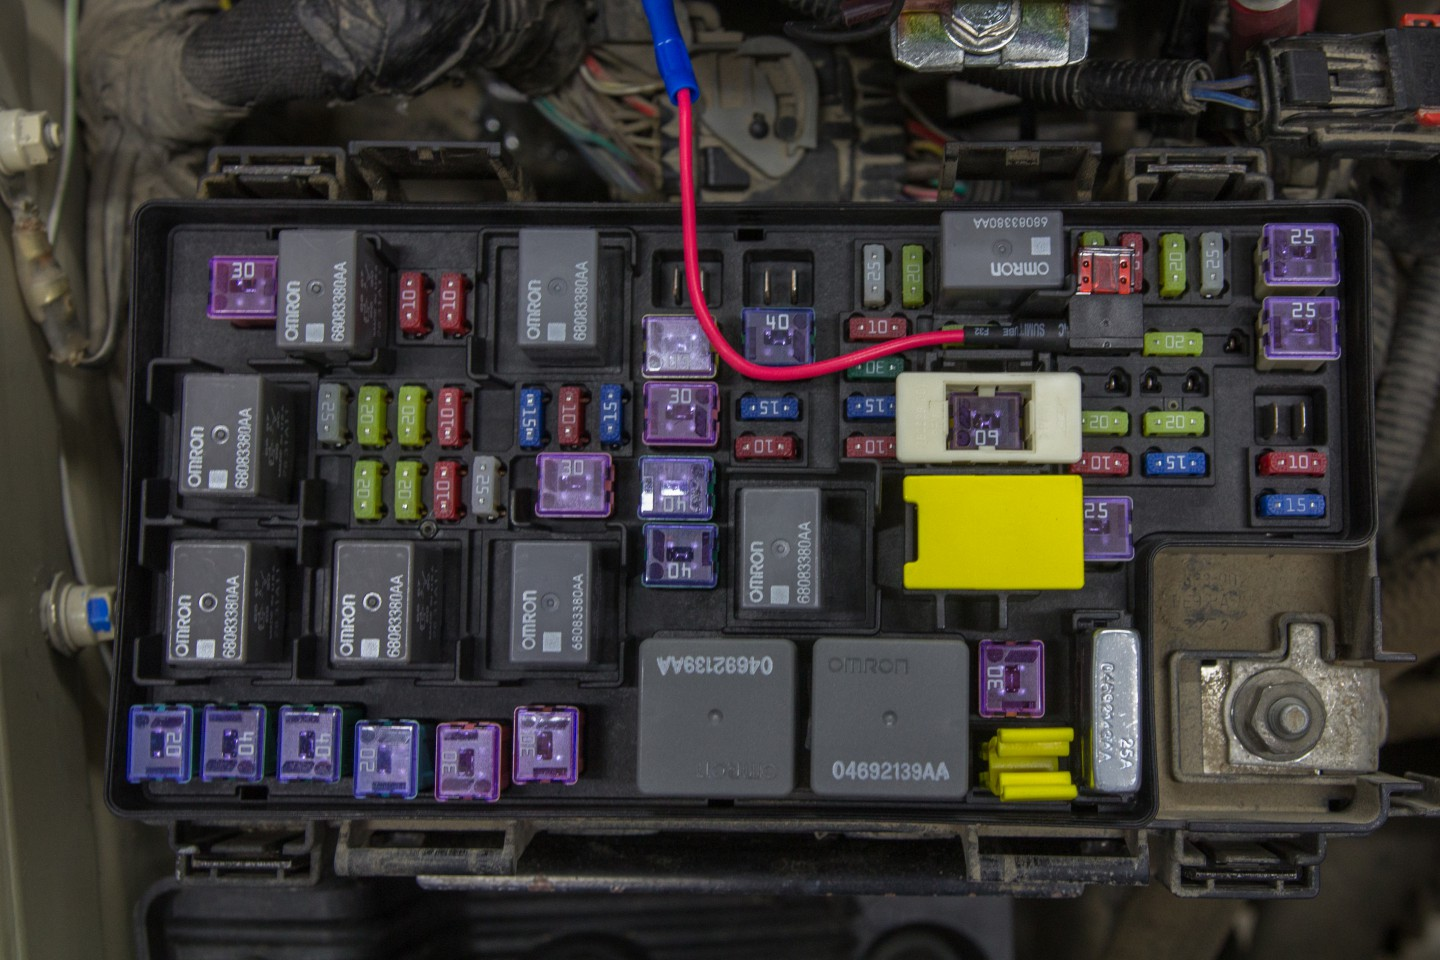 jk wrangler dual batteries trigger wire in fuse block 1440x960 2013 jeep wrangler fuse box wiring diagram simonand 2016 jeep wrangler fuse box diagram at bakdesigns.co